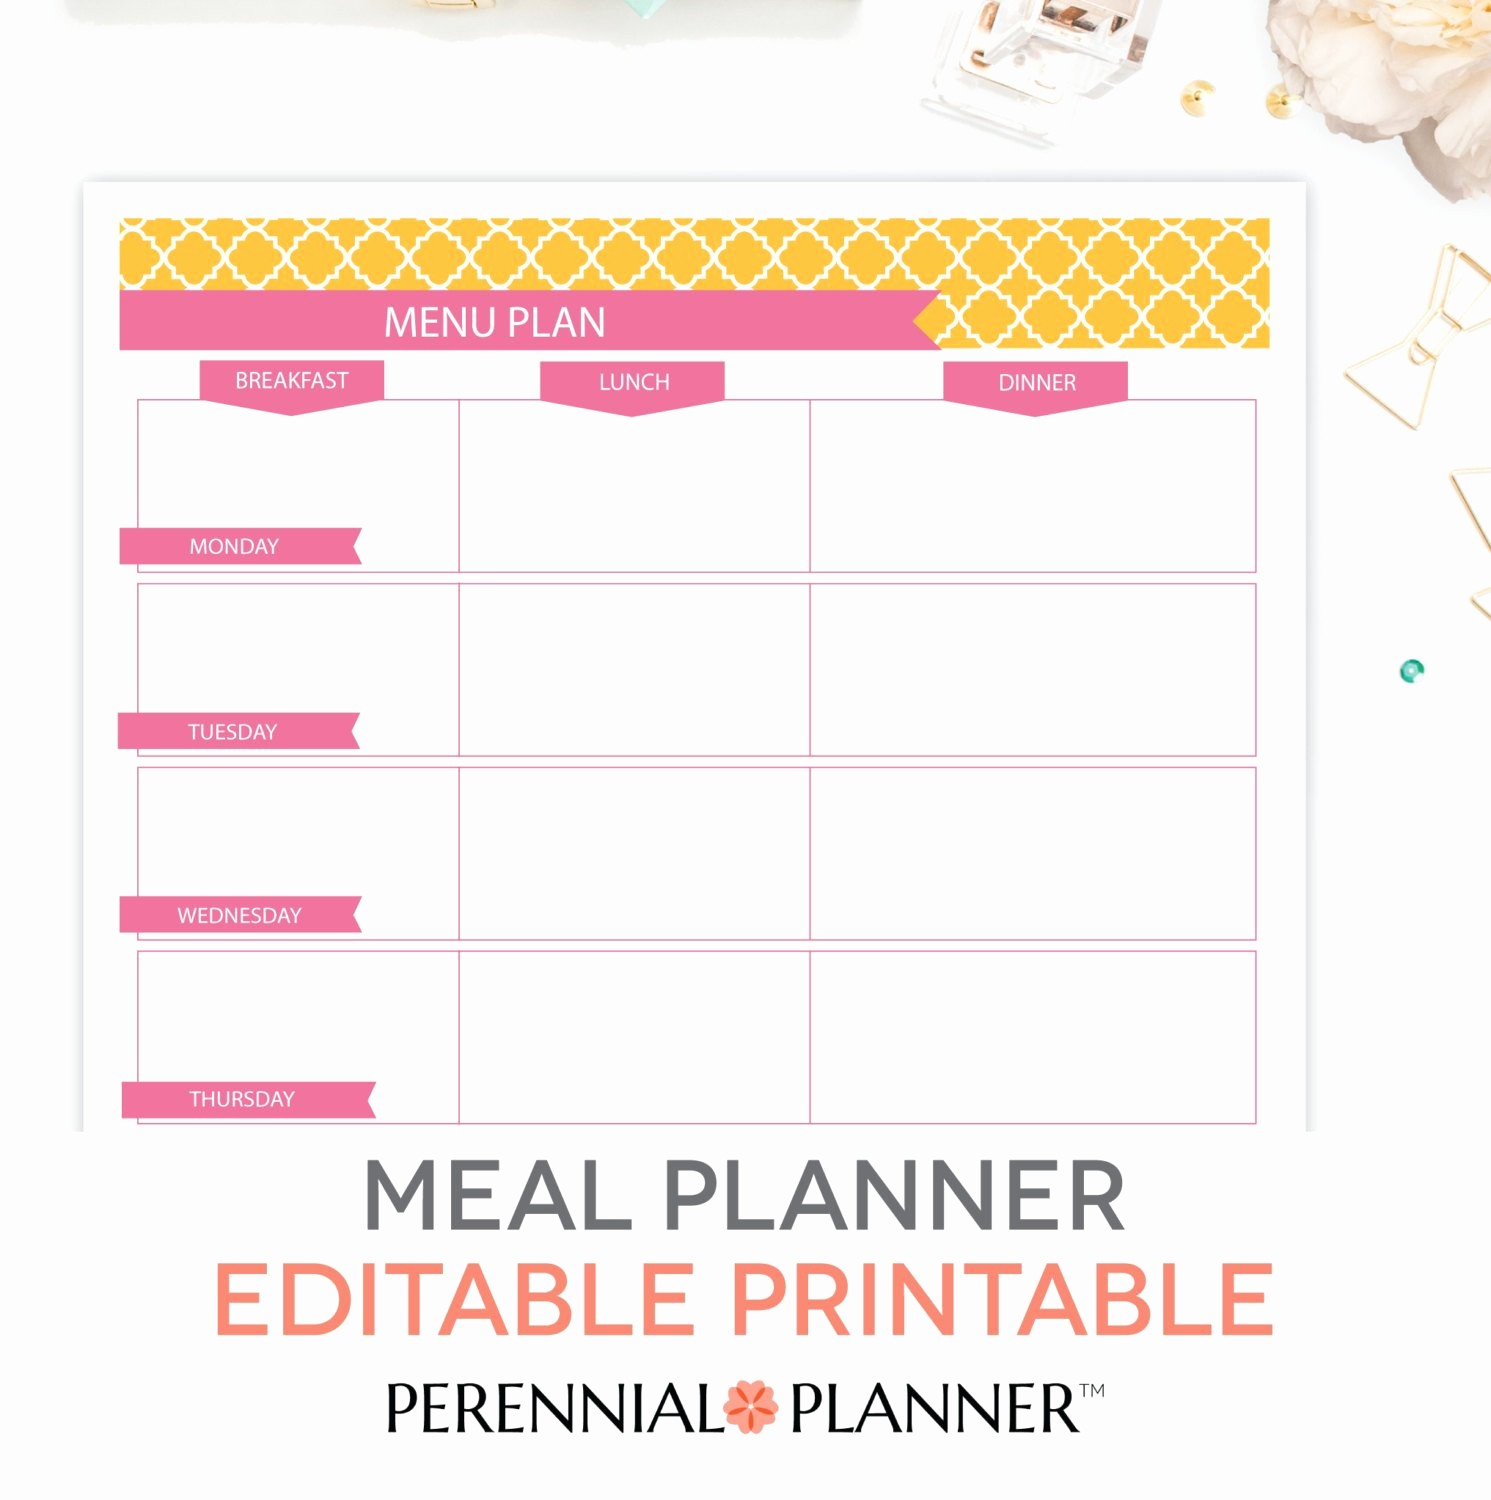 Weekly Meal and Snack Planner Luxury Menu Plan Weekly Meal Planning Template Printable Editable